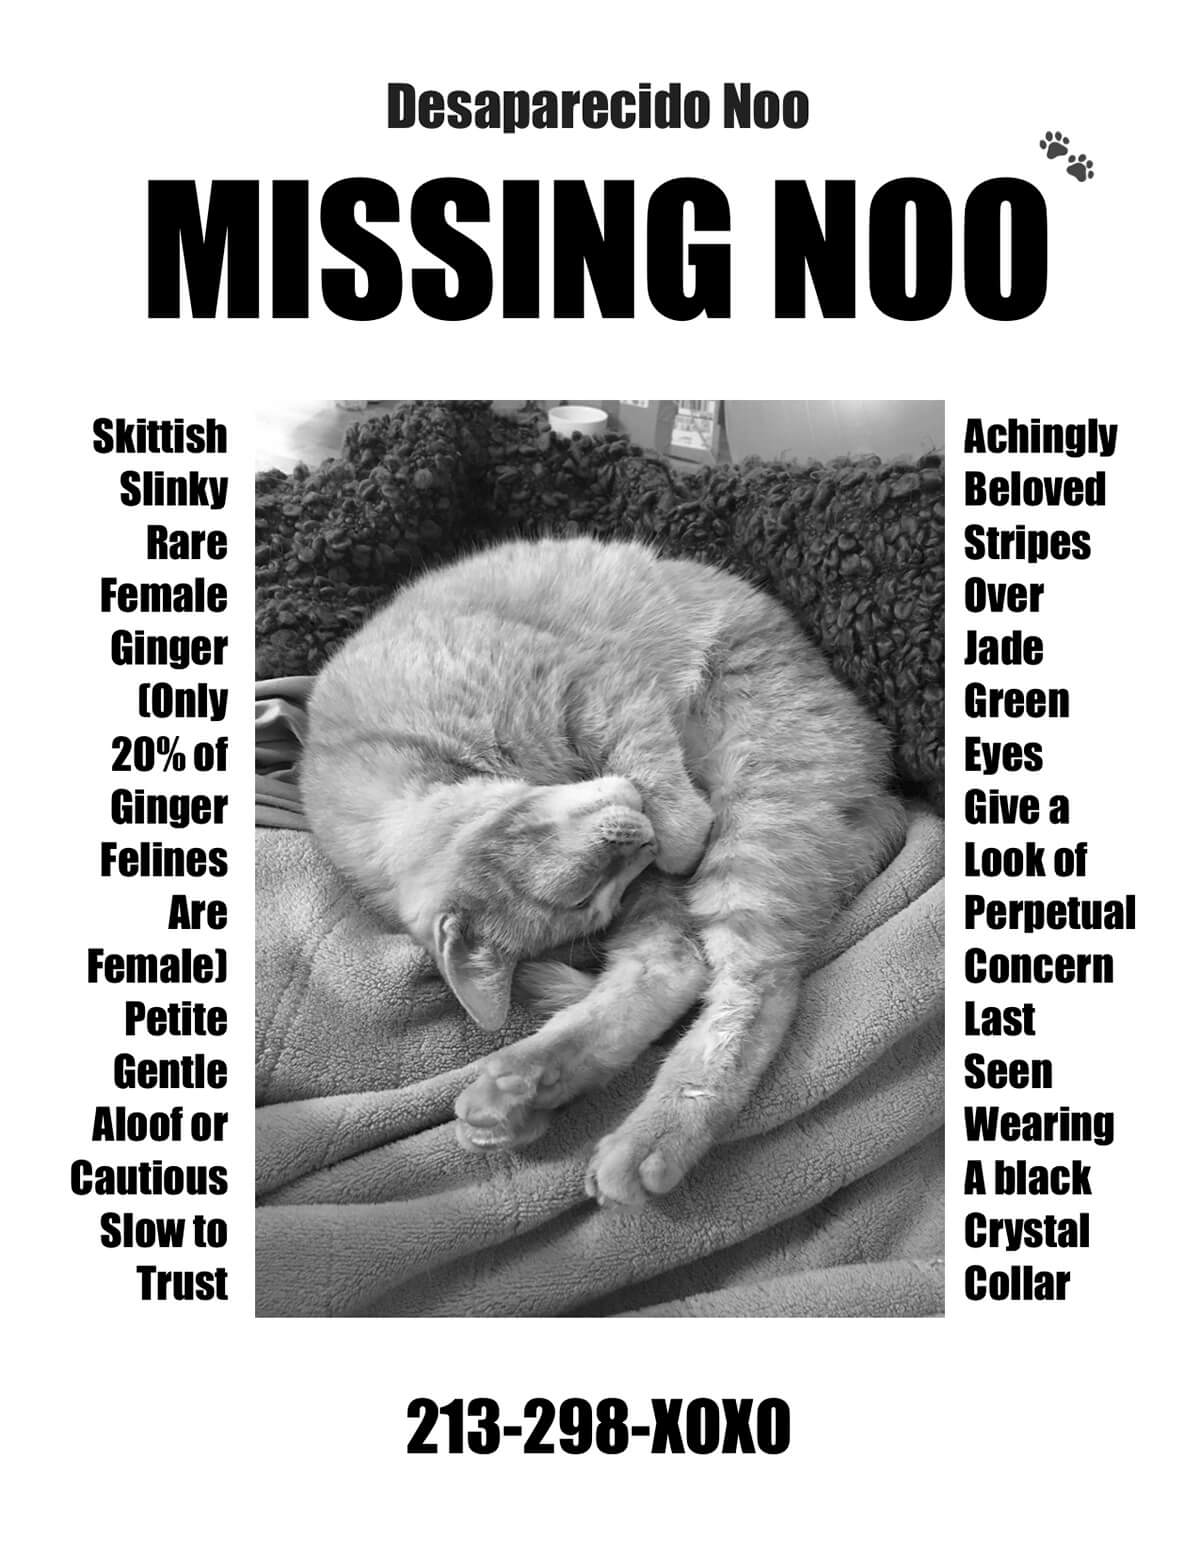 The author's Missing Noo flier.